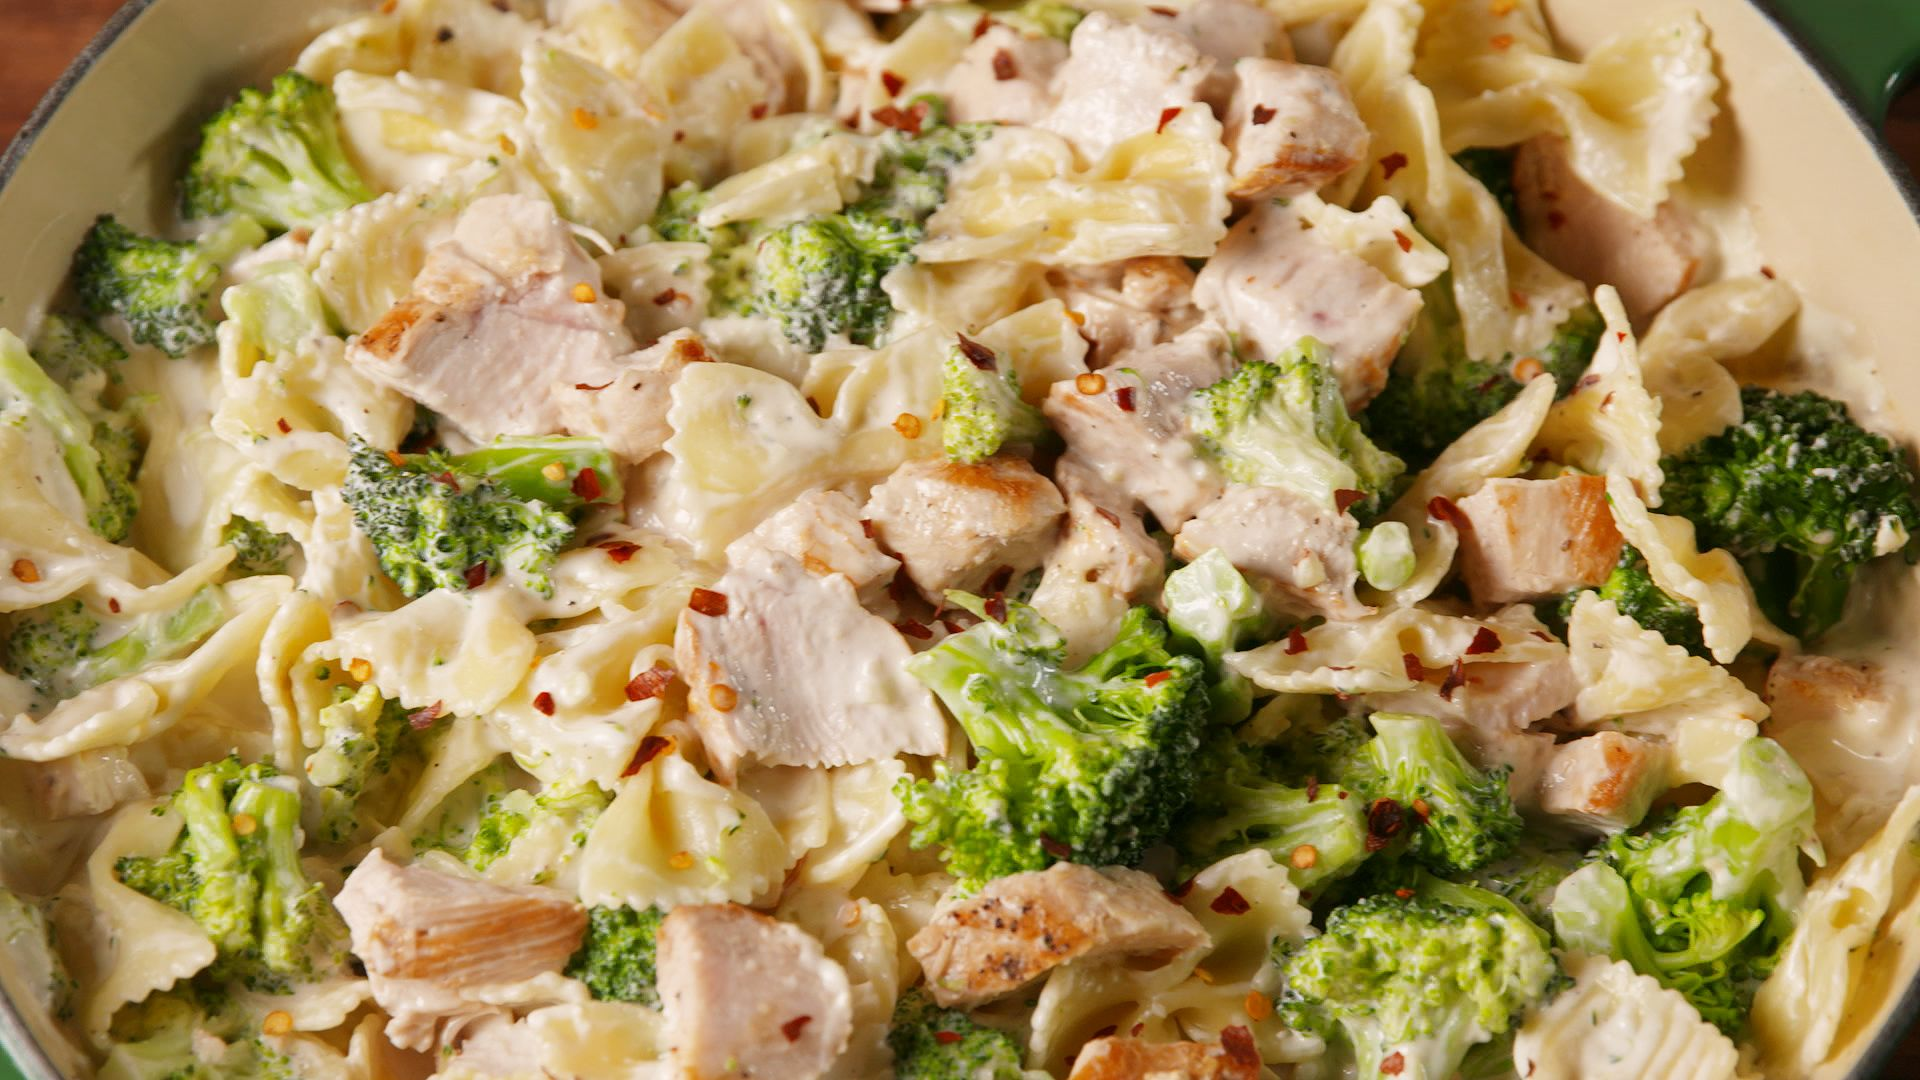 Creamy Chicken And Broccoli Pasta Bake-8081